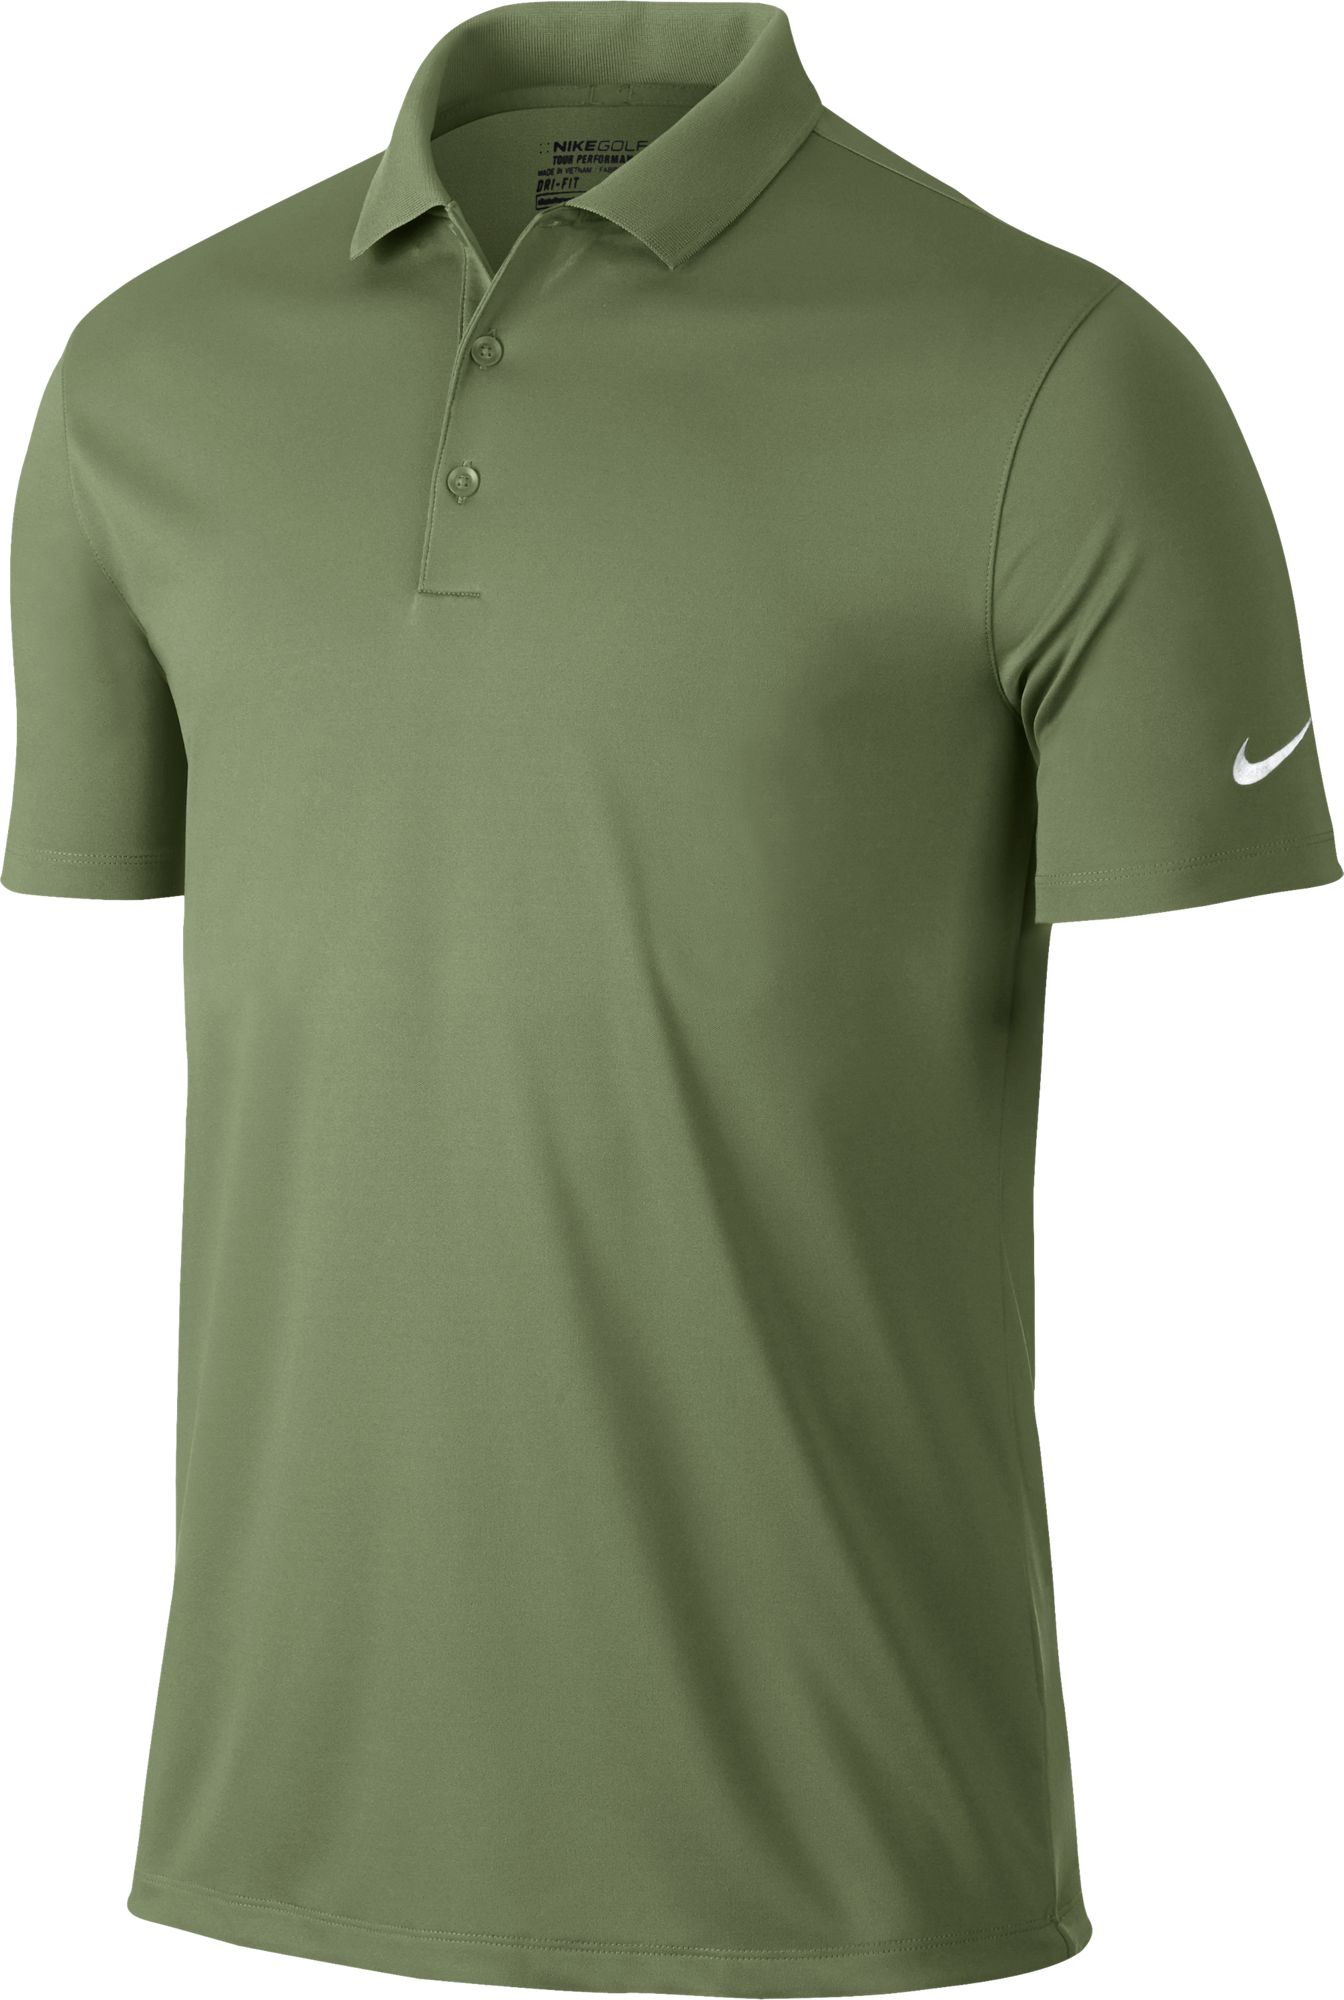 nike victory solid dri fit polo golf shirt 725518 pick a size color 2017 ebay. Black Bedroom Furniture Sets. Home Design Ideas